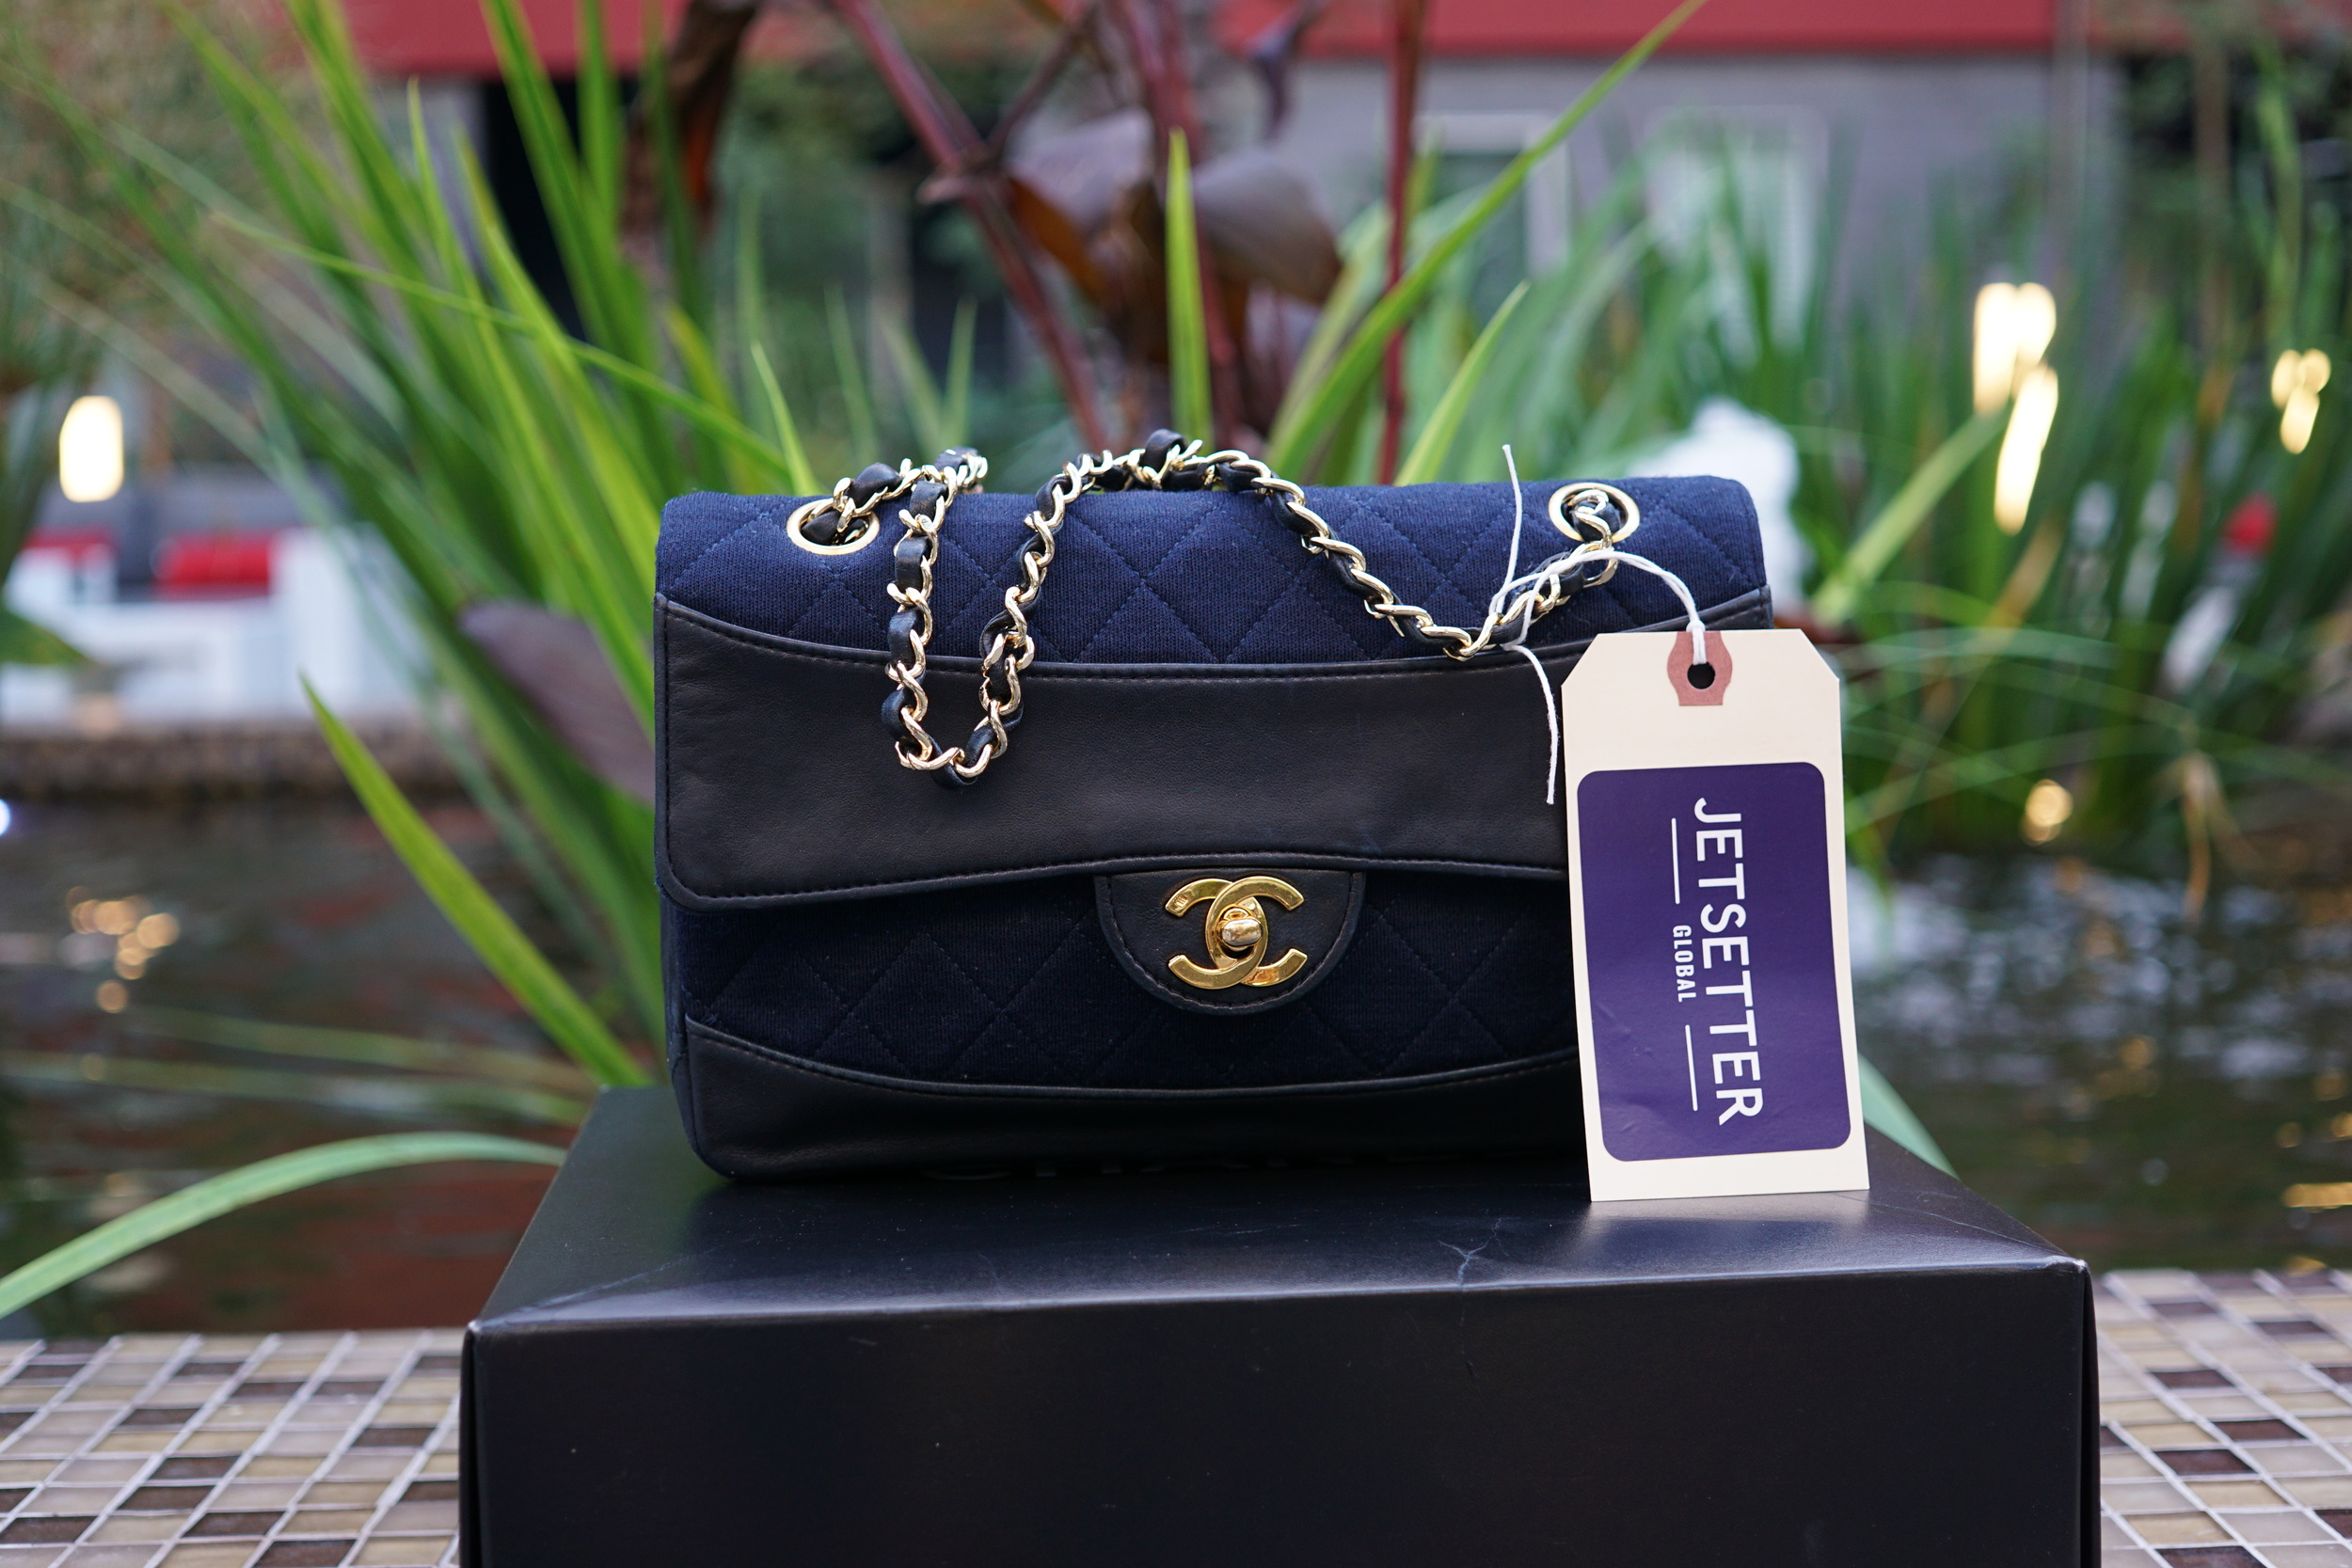 49dc02c0 1991 / Chanel Navy Fabric Leather Flap Small